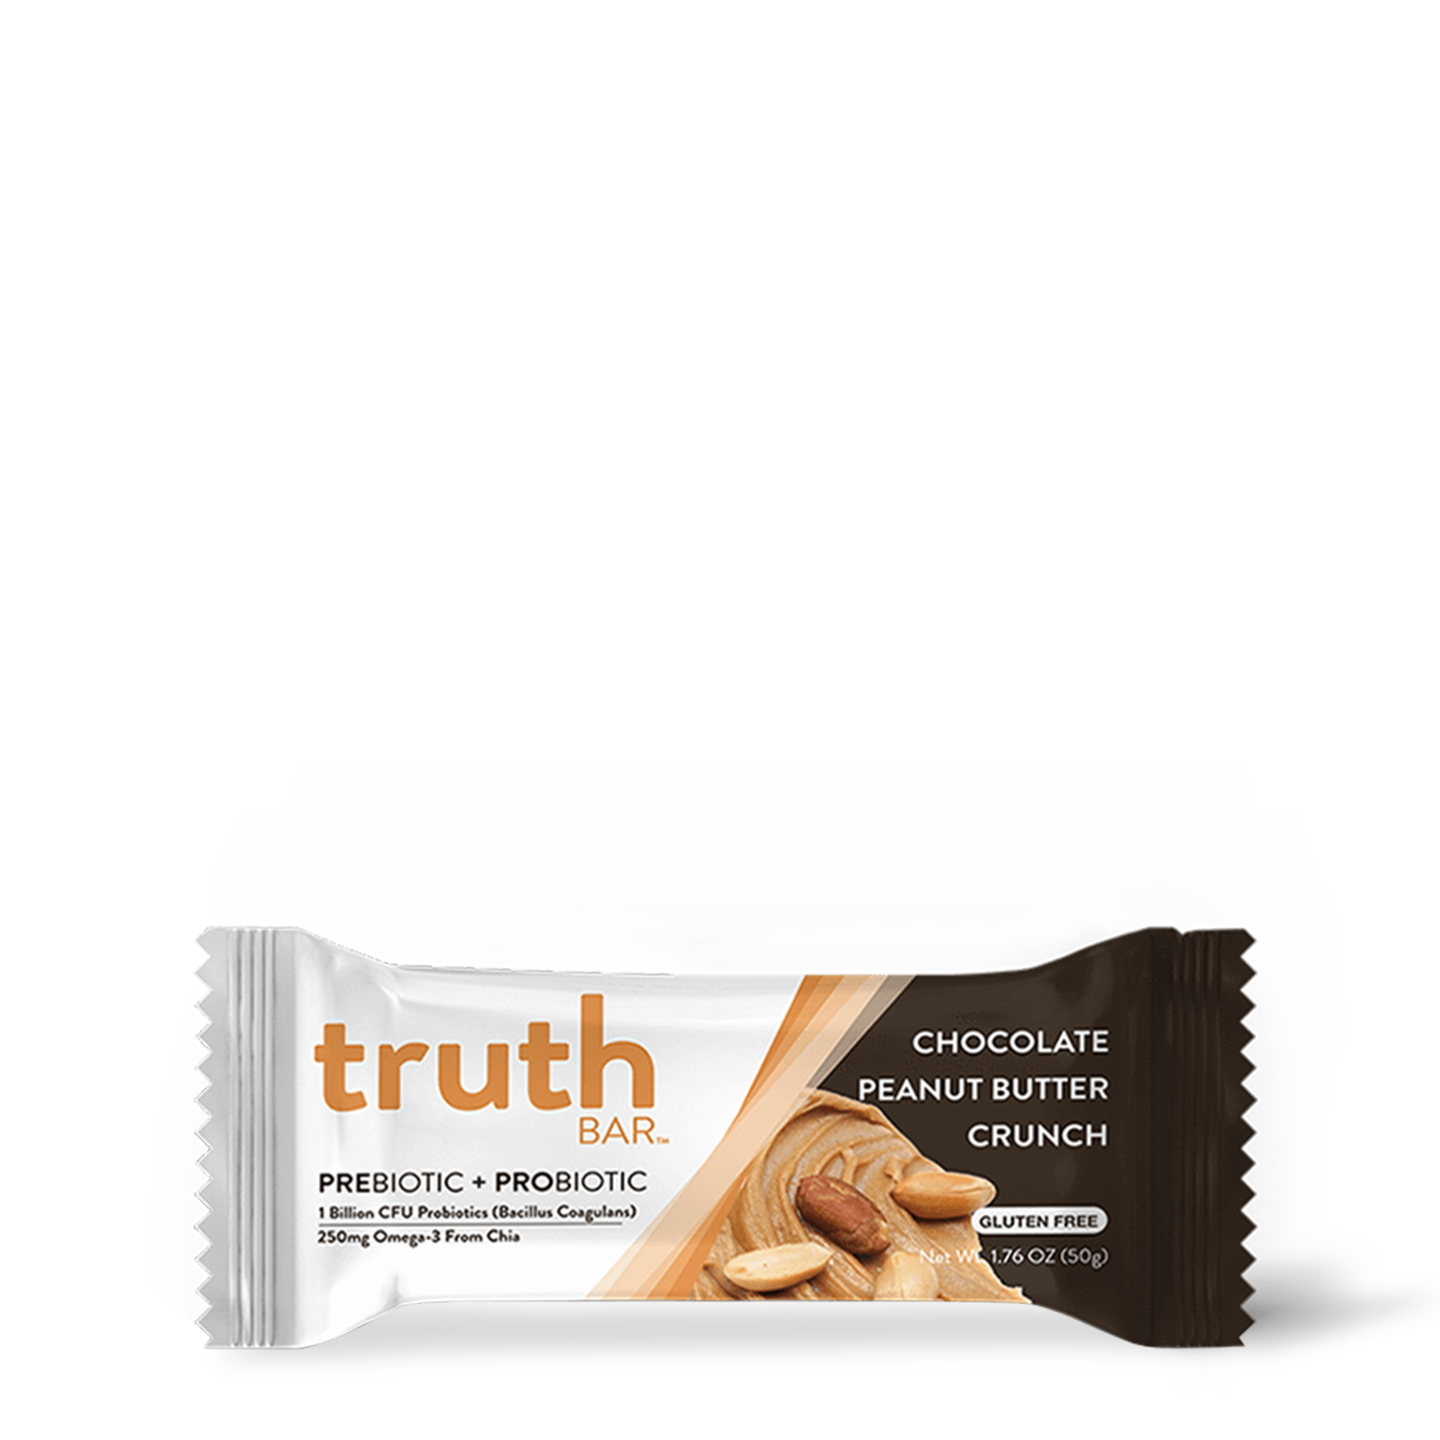 Chocolate Peanut Butter Crunch Truth Bar product image